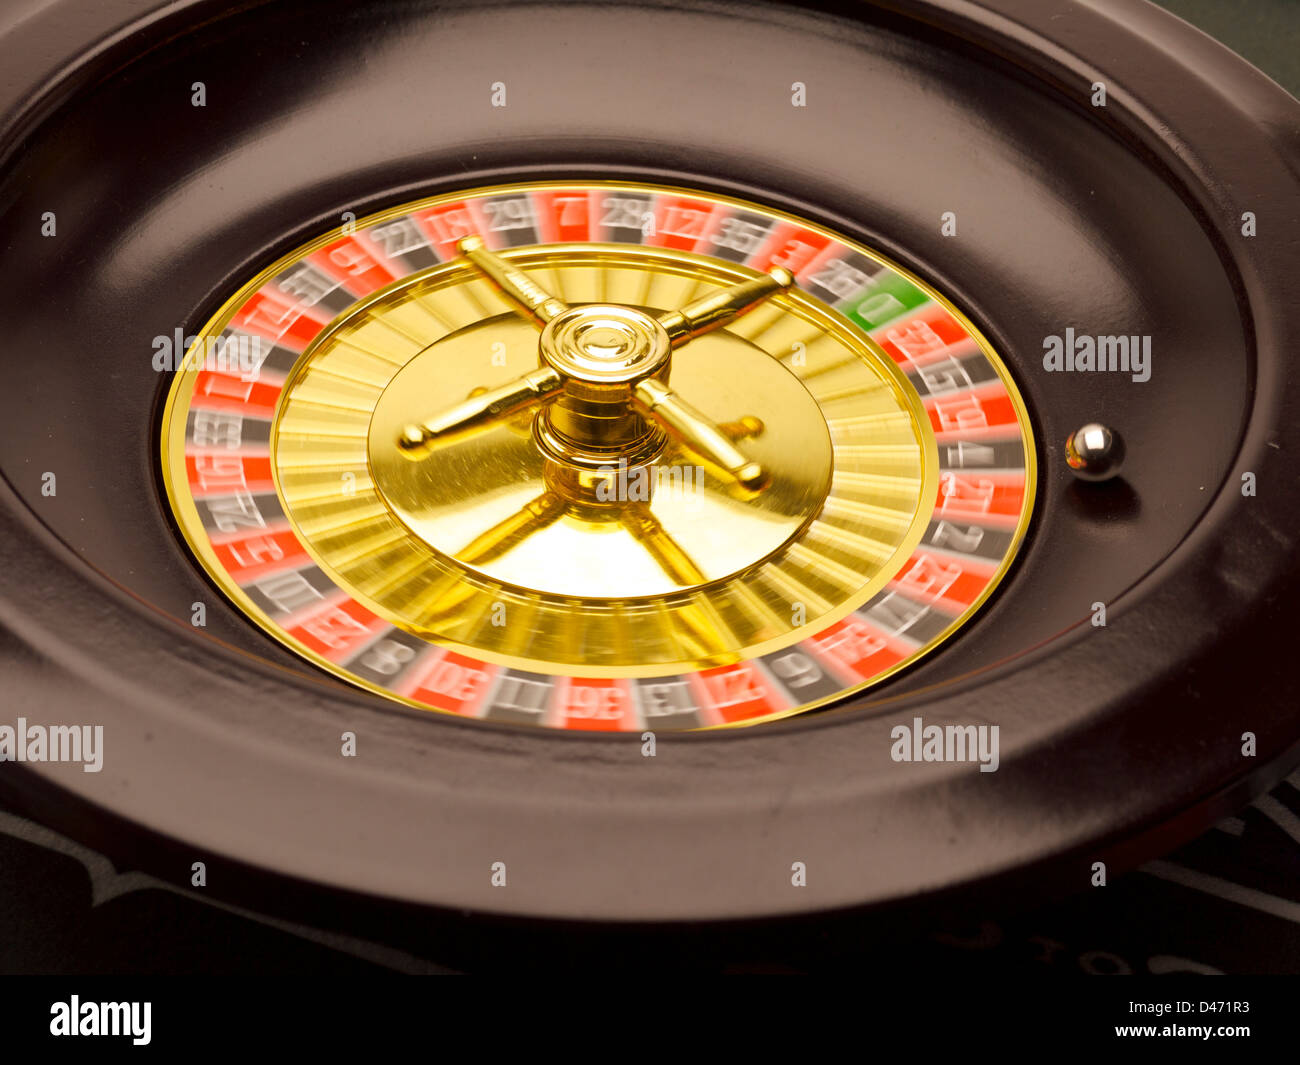 Spinning Roulette wheel with ball. - Stock Image